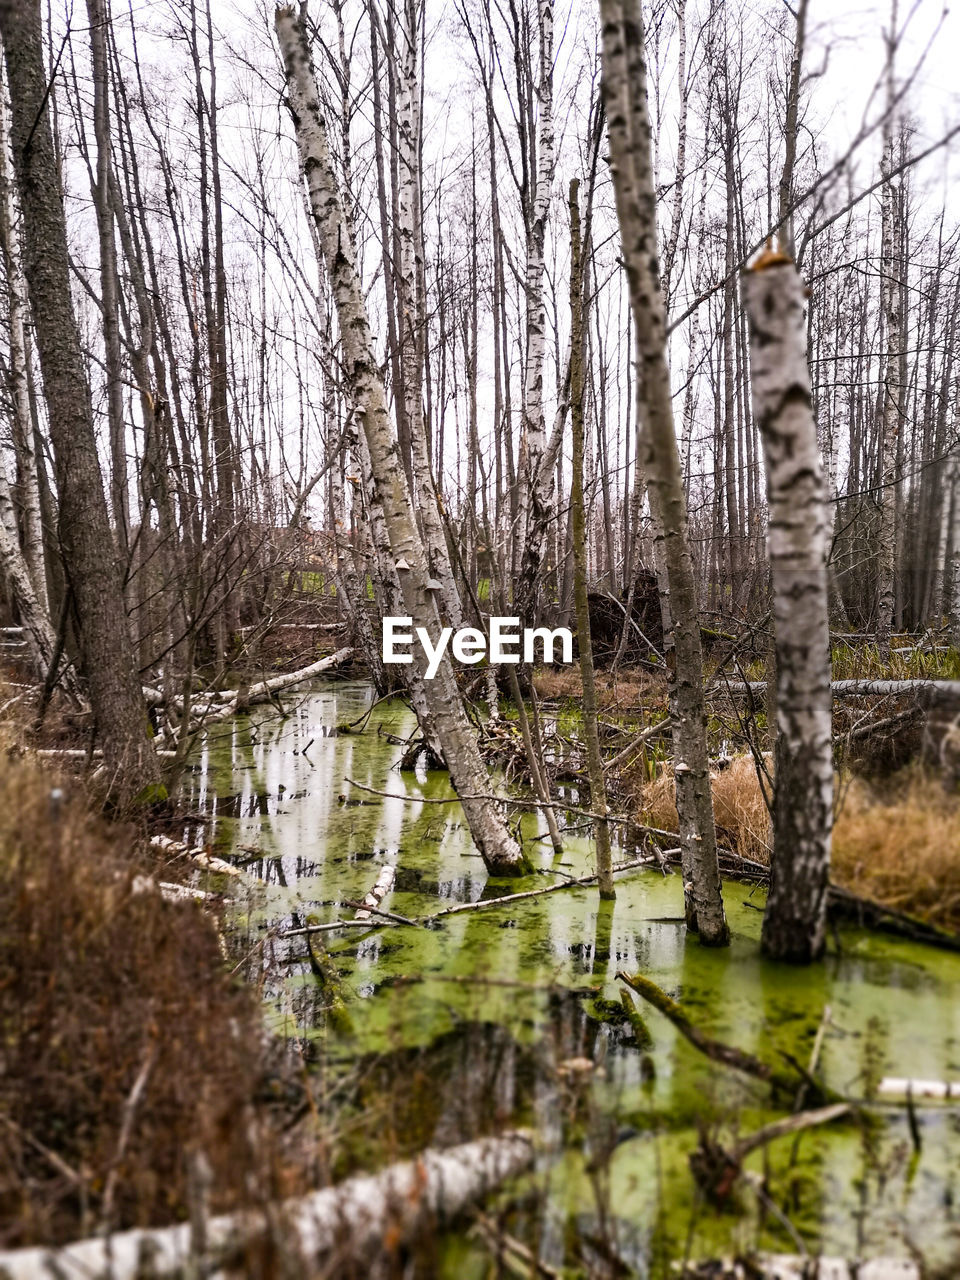 water, tree, forest, plant, tranquility, no people, nature, land, reflection, beauty in nature, lake, tree trunk, trunk, day, wetland, non-urban scene, woodland, tranquil scene, outdoors, swamp, flowing water